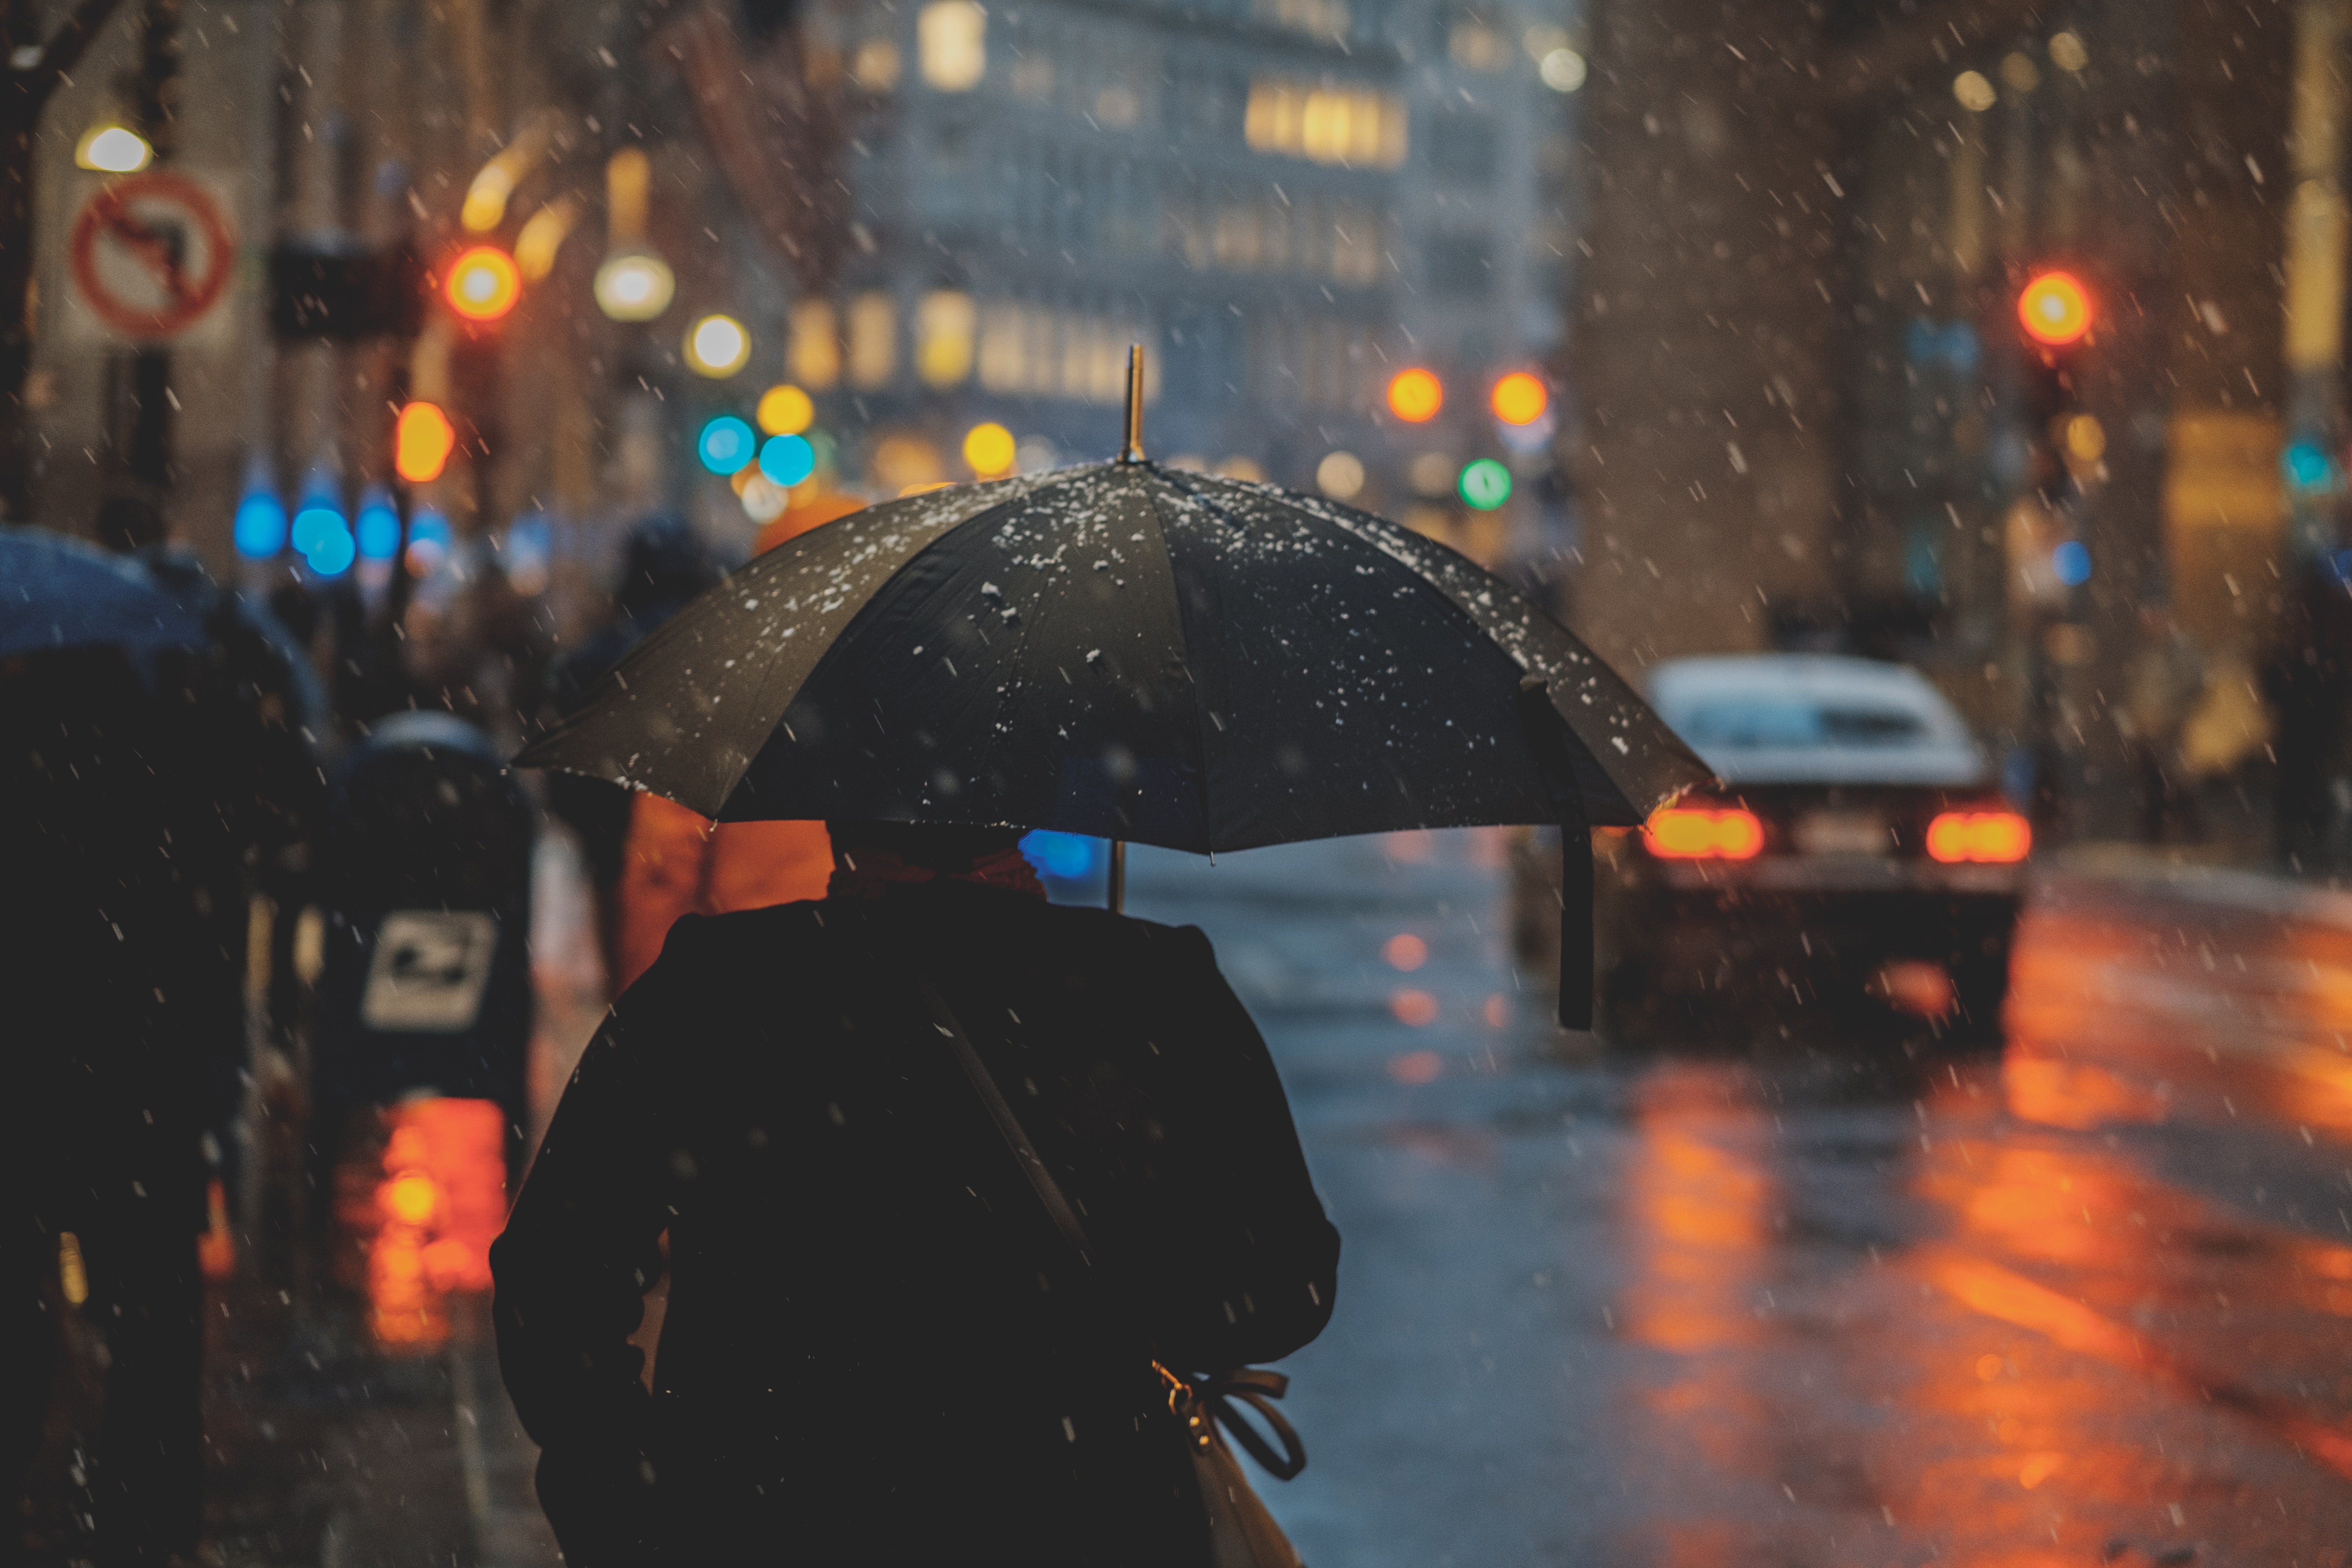 How To Focus On Wet Window >> Rain Pictures [HD] | Download Free Images & Stock Photos on Unsplash